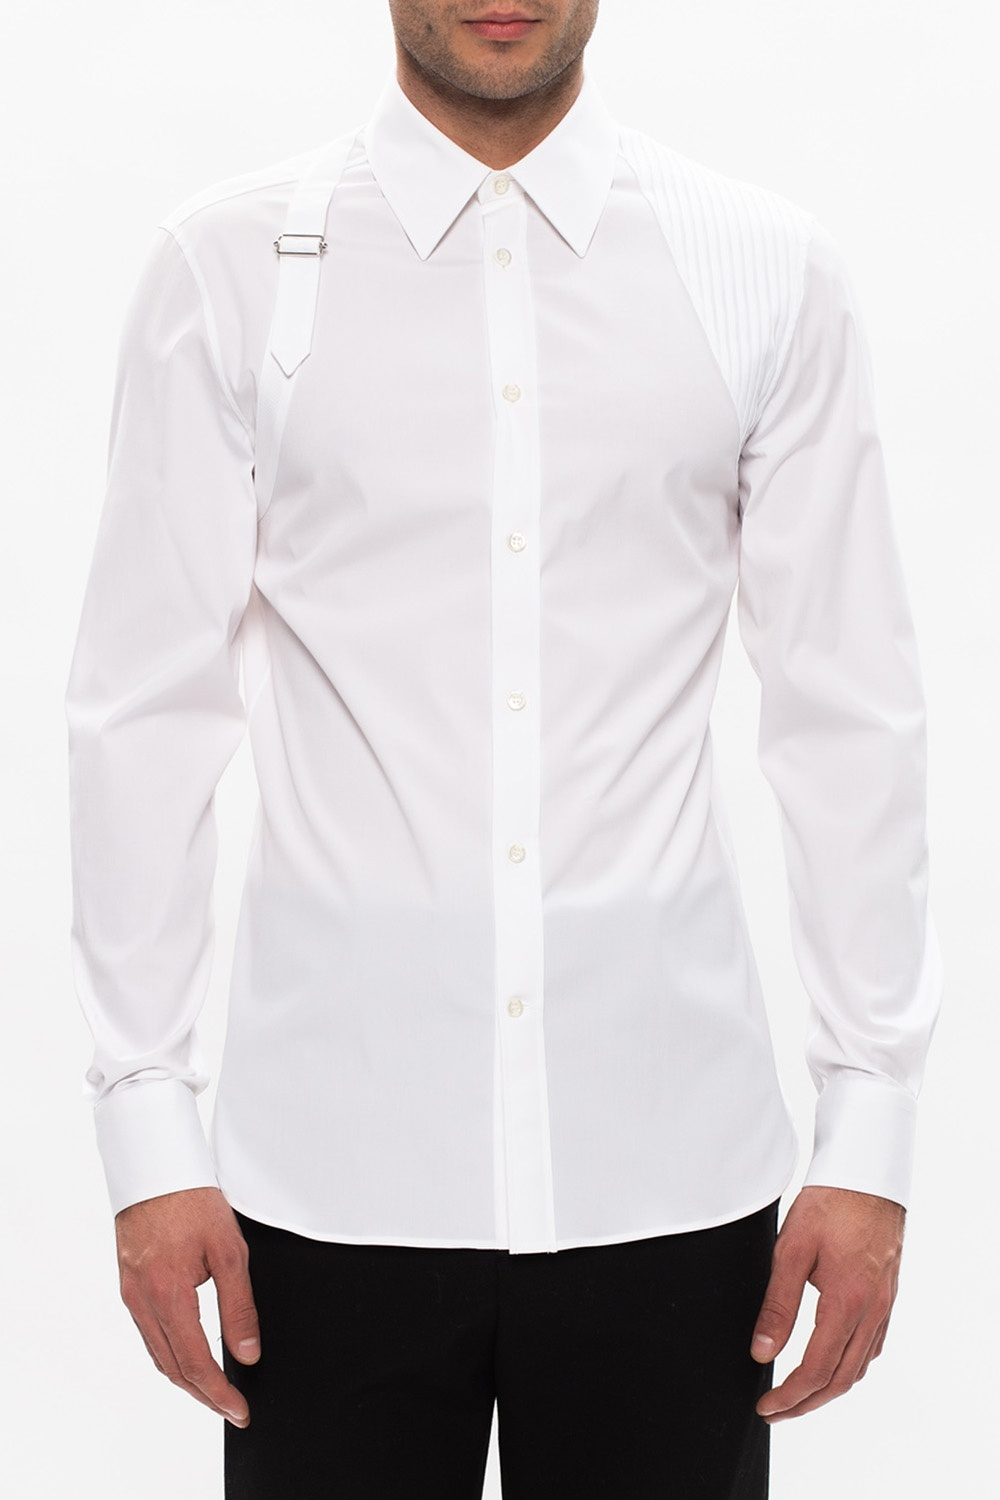 Alexander McQueen Shirt with decorative belt